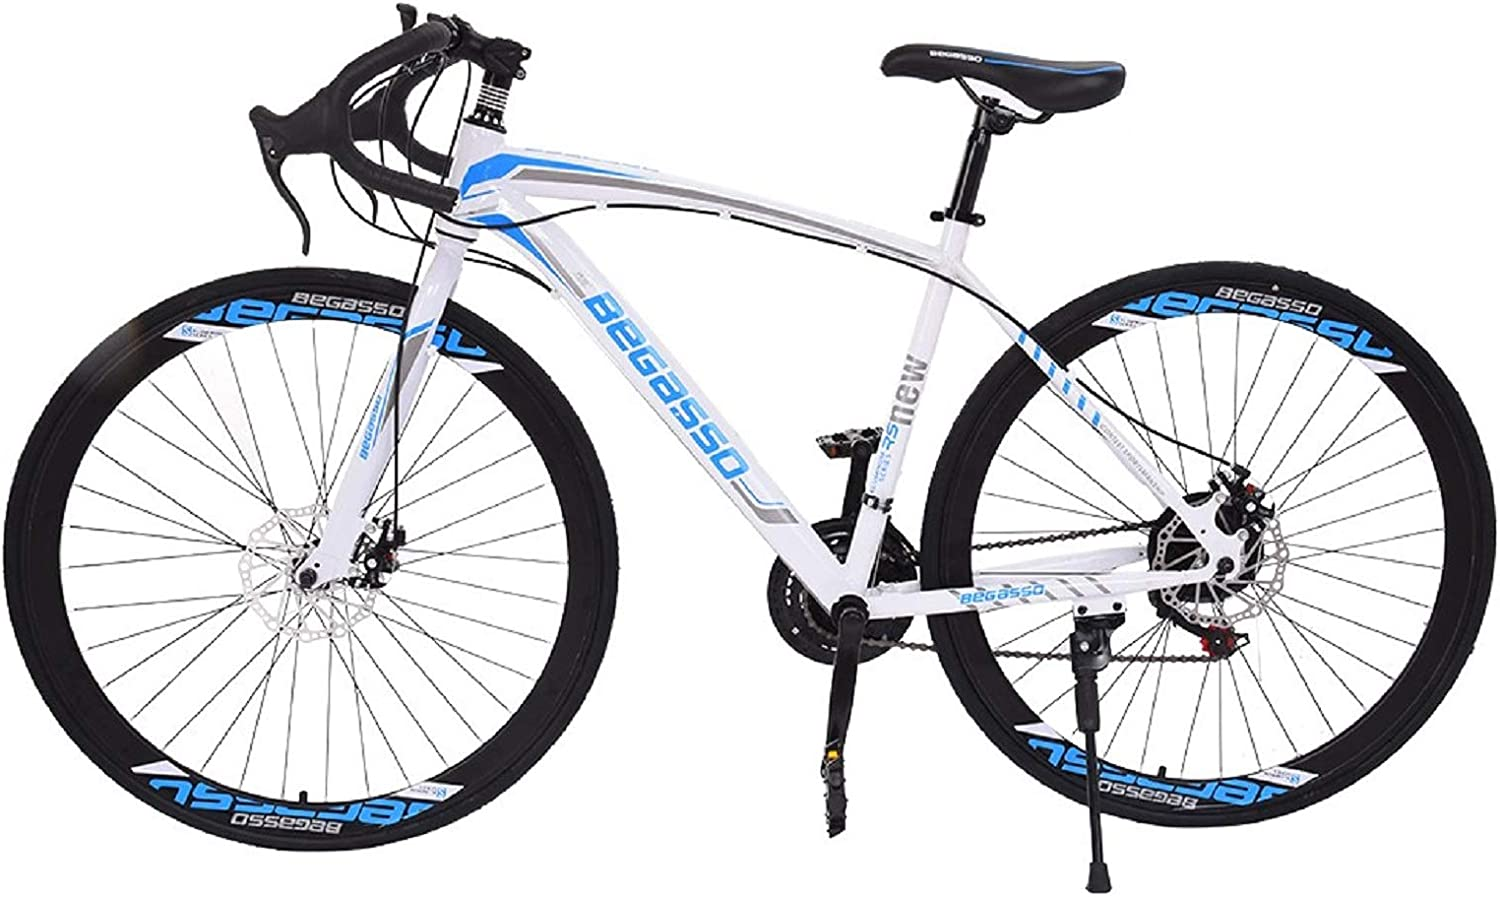 LYBOHO 26 inch Lightweight Durable Aluminum Begass Bicycles Road Popular shop is the lowest price challenge New life